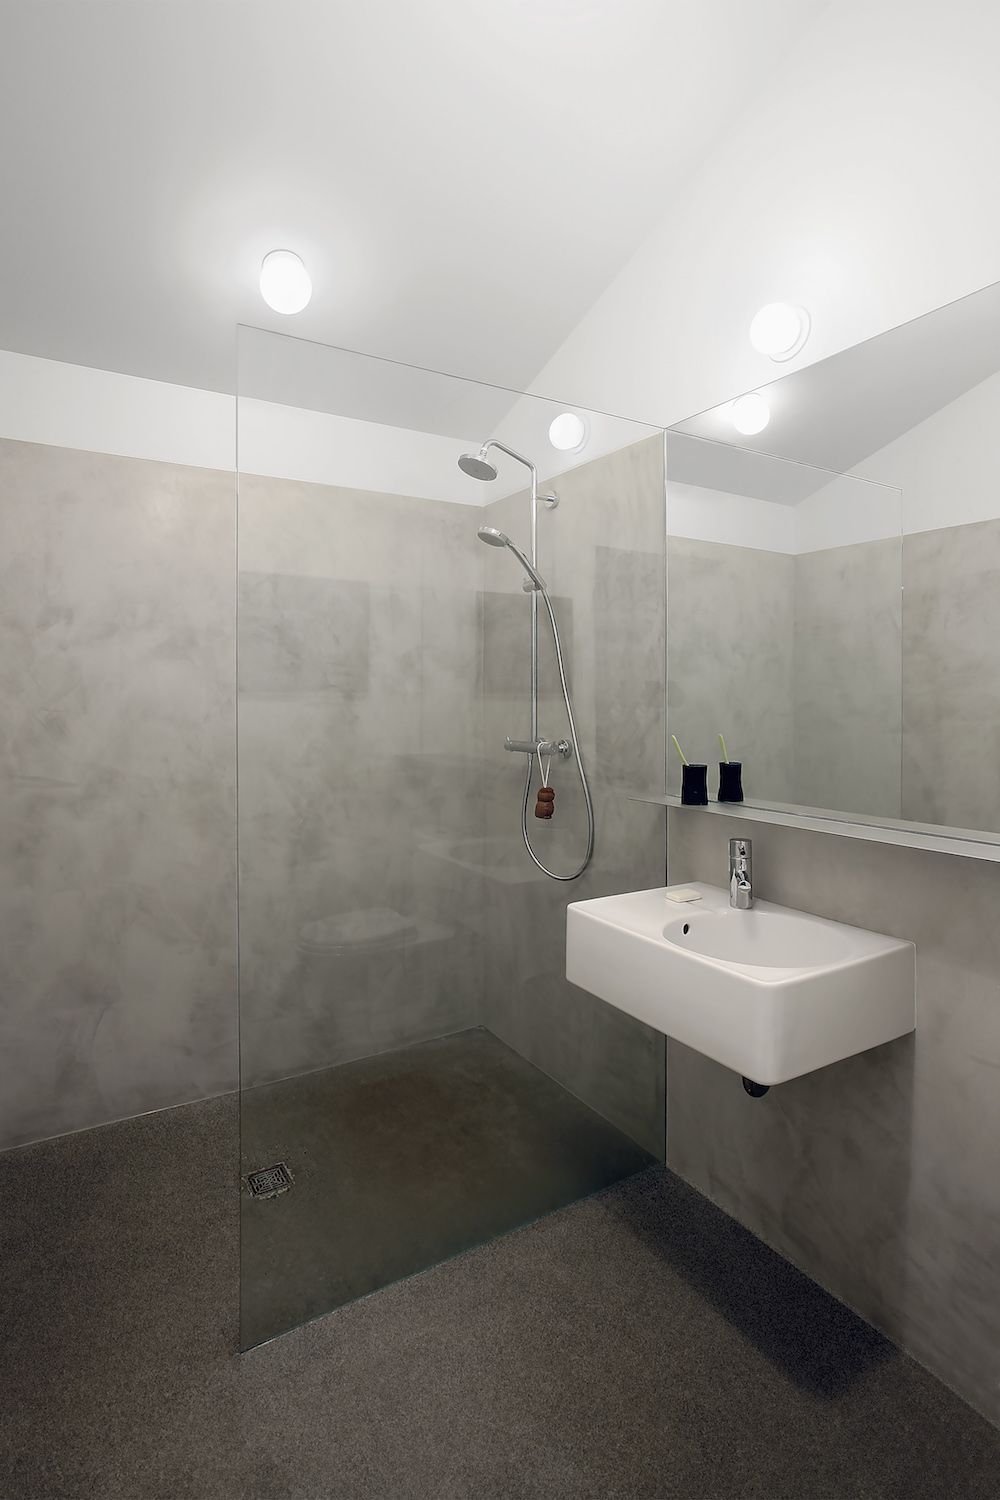 BeforeAfter A Stable To Work Studio Conversion In Kirkland - Studio shed with bathroom for bathroom decor ideas